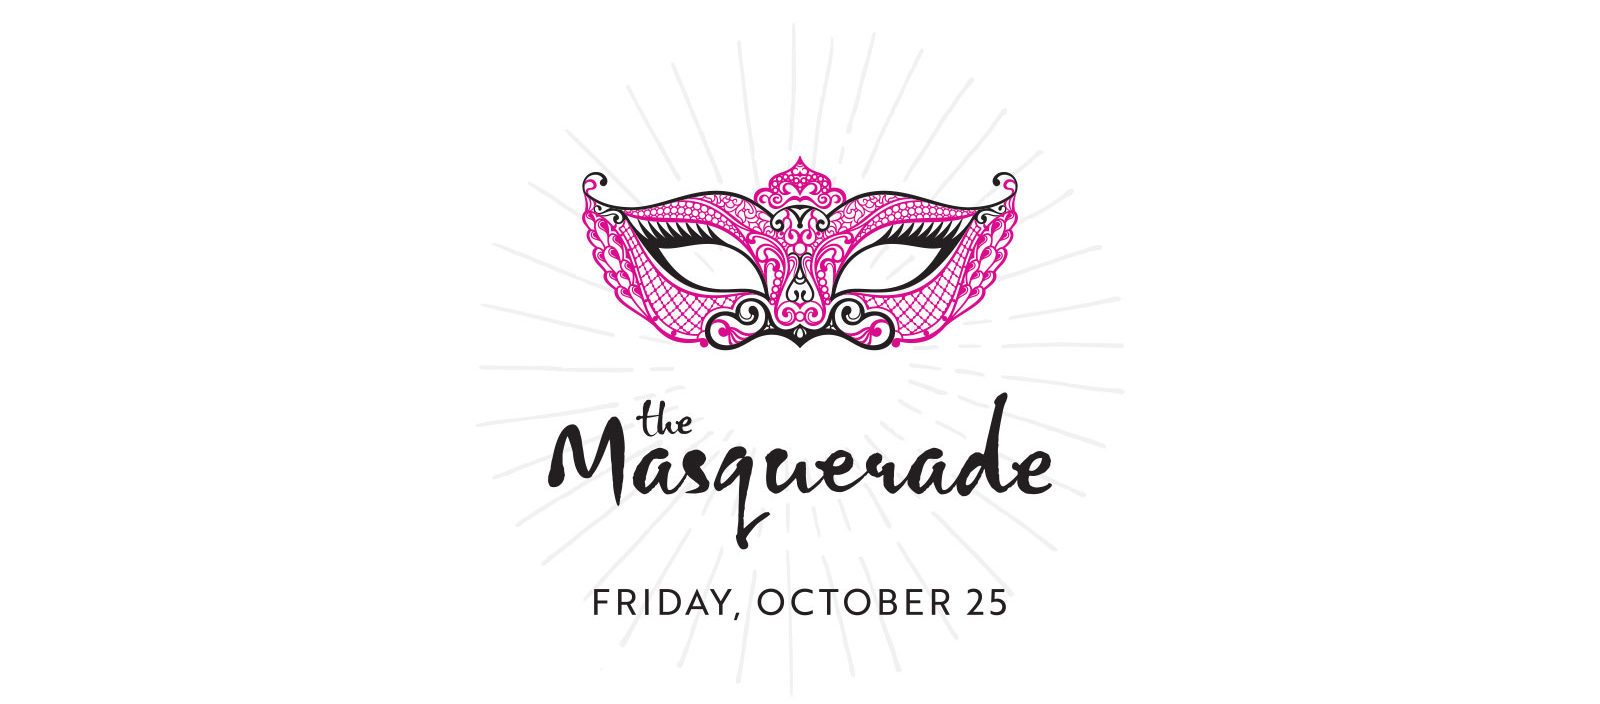 The Masquerade - Friday October 25, 2019